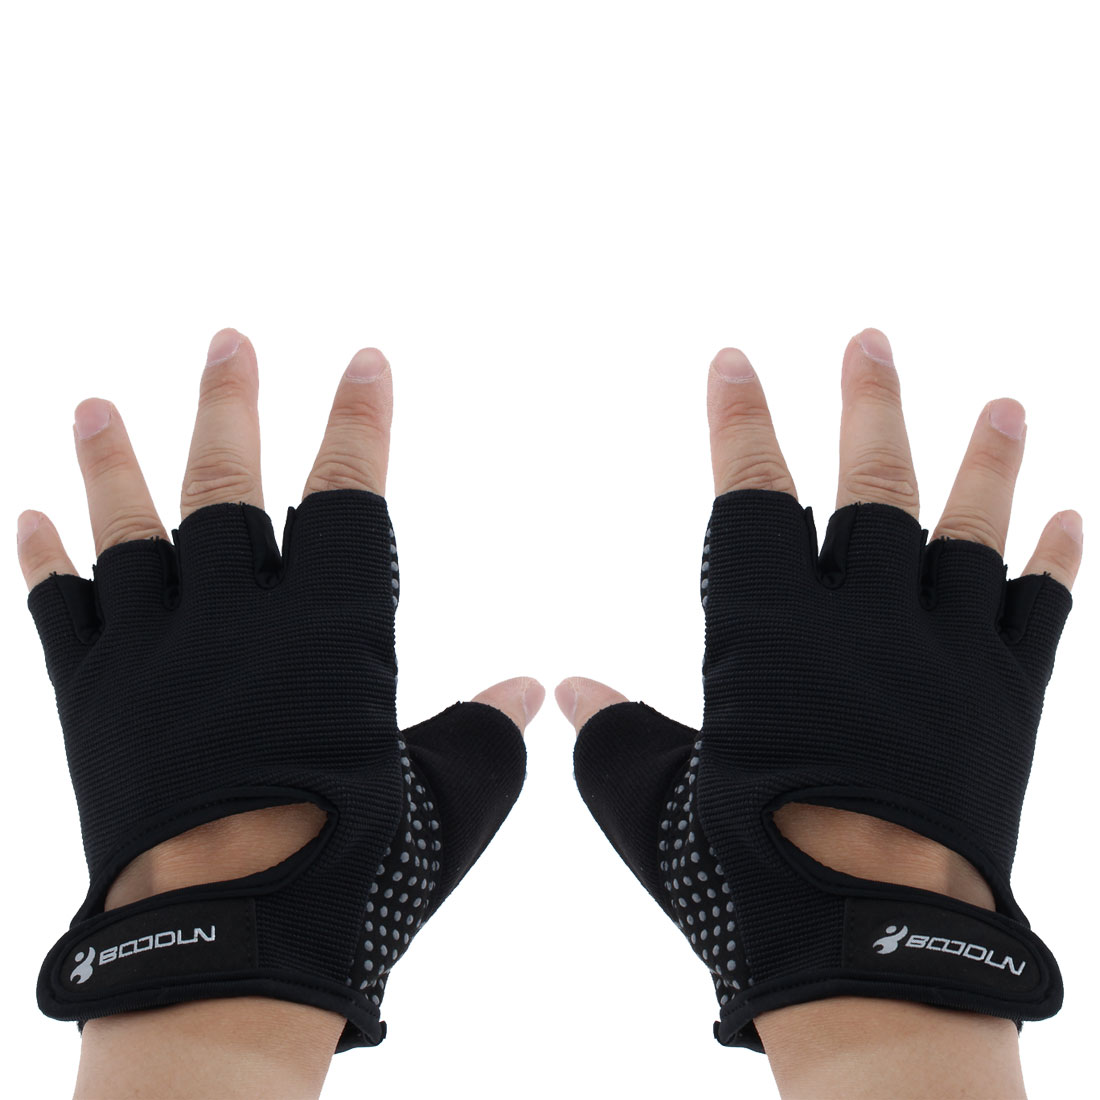 BOODUN Authorized Exercise Weight Biking Lifting Training Microfiber Non-slip Fitness Half Finger Gloves Black L